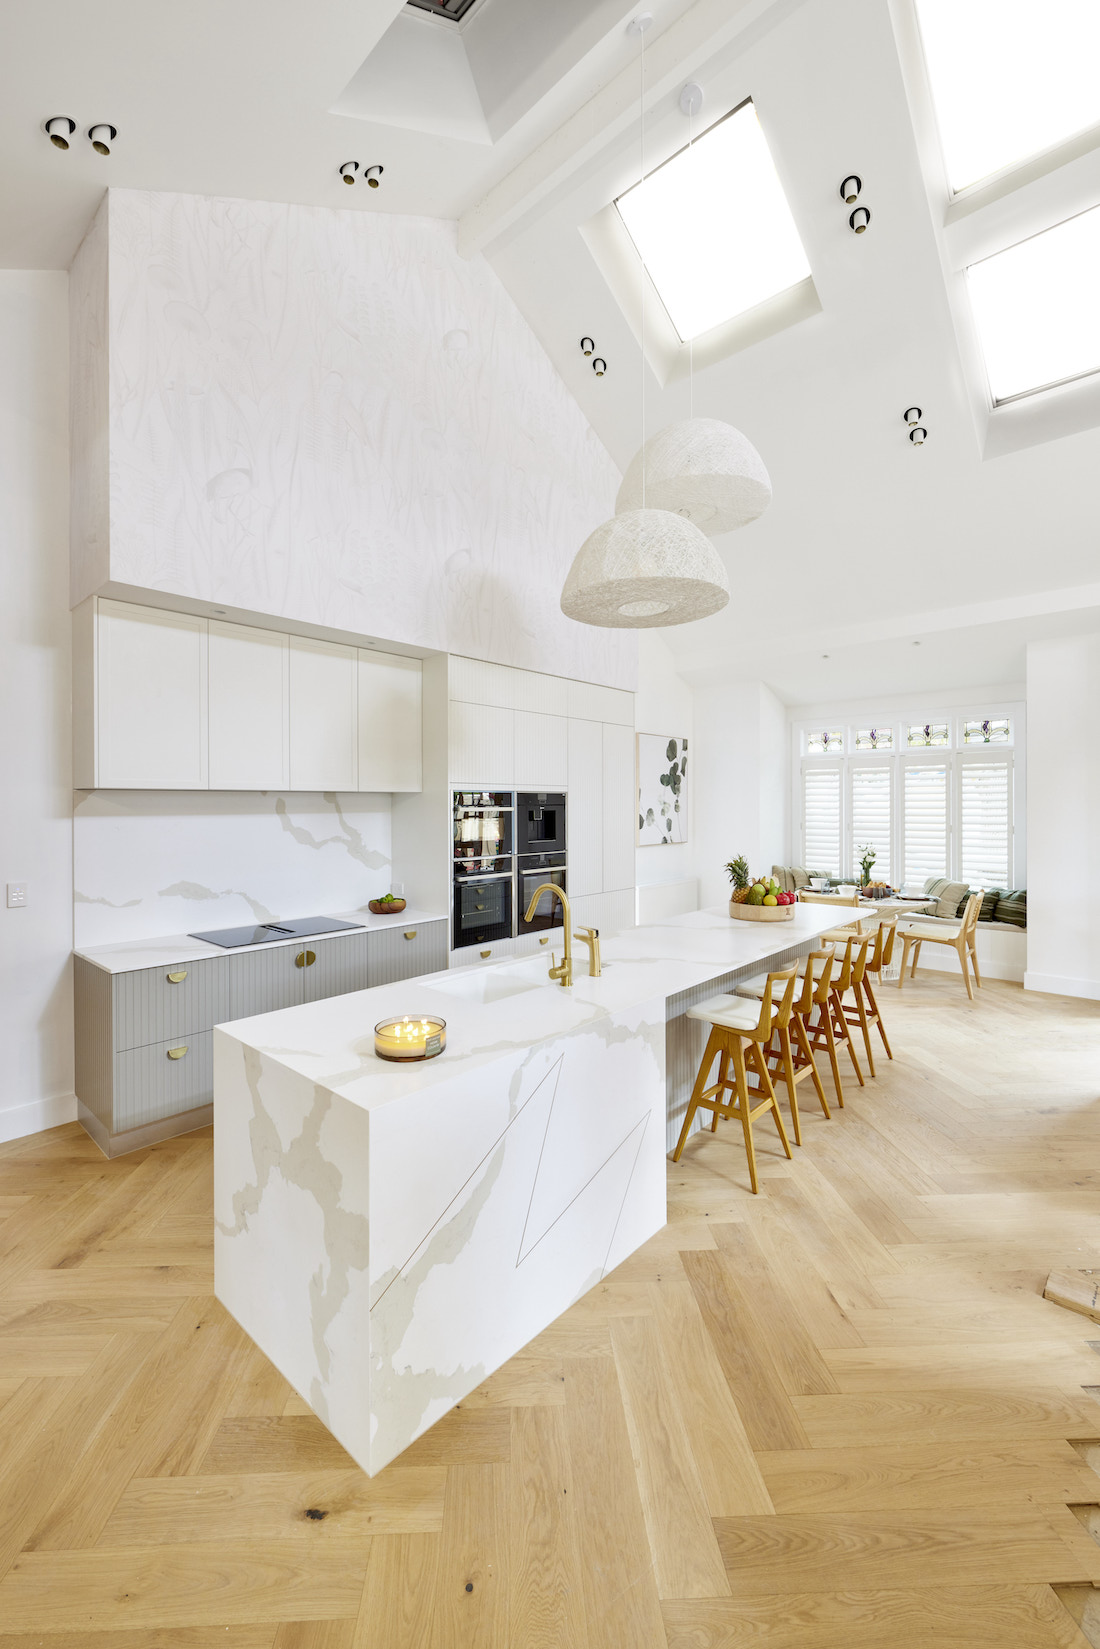 Marble benchtop in white and timber kitchen